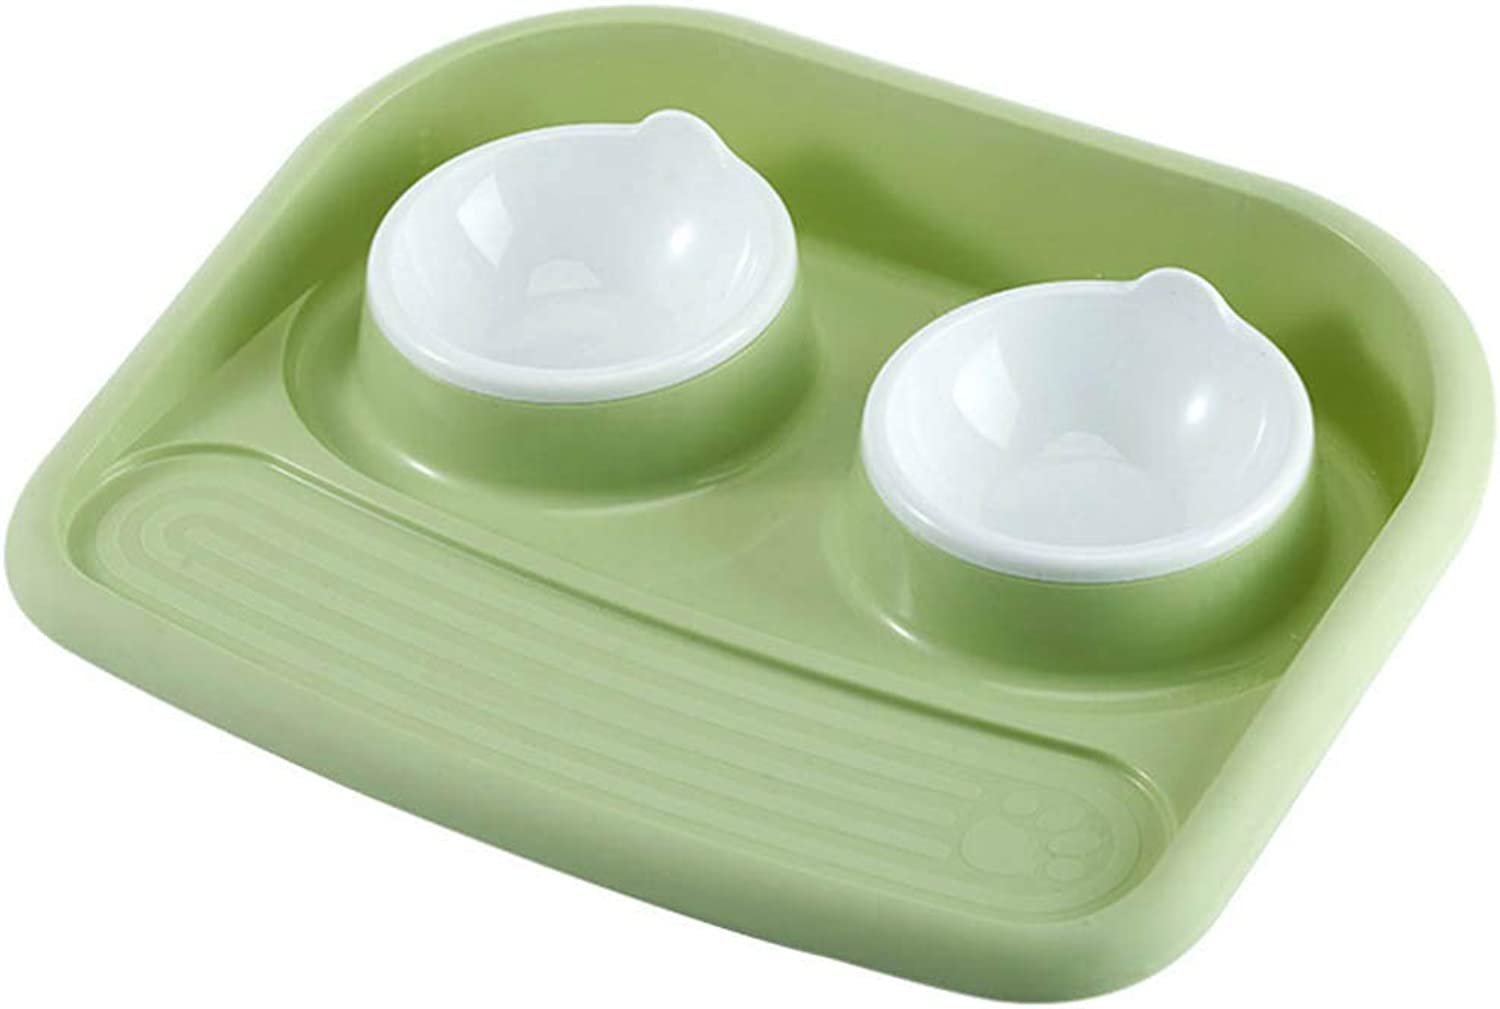 Feeder Bowl Feeder for Dogs Dog Accessories, Antibacterial Pet Dog Feeding Bowls, NonSlip Plastic NonSpill Food Plate Dog Cat Food Feeder for Small Medium Dogs Feeding Tool,Green